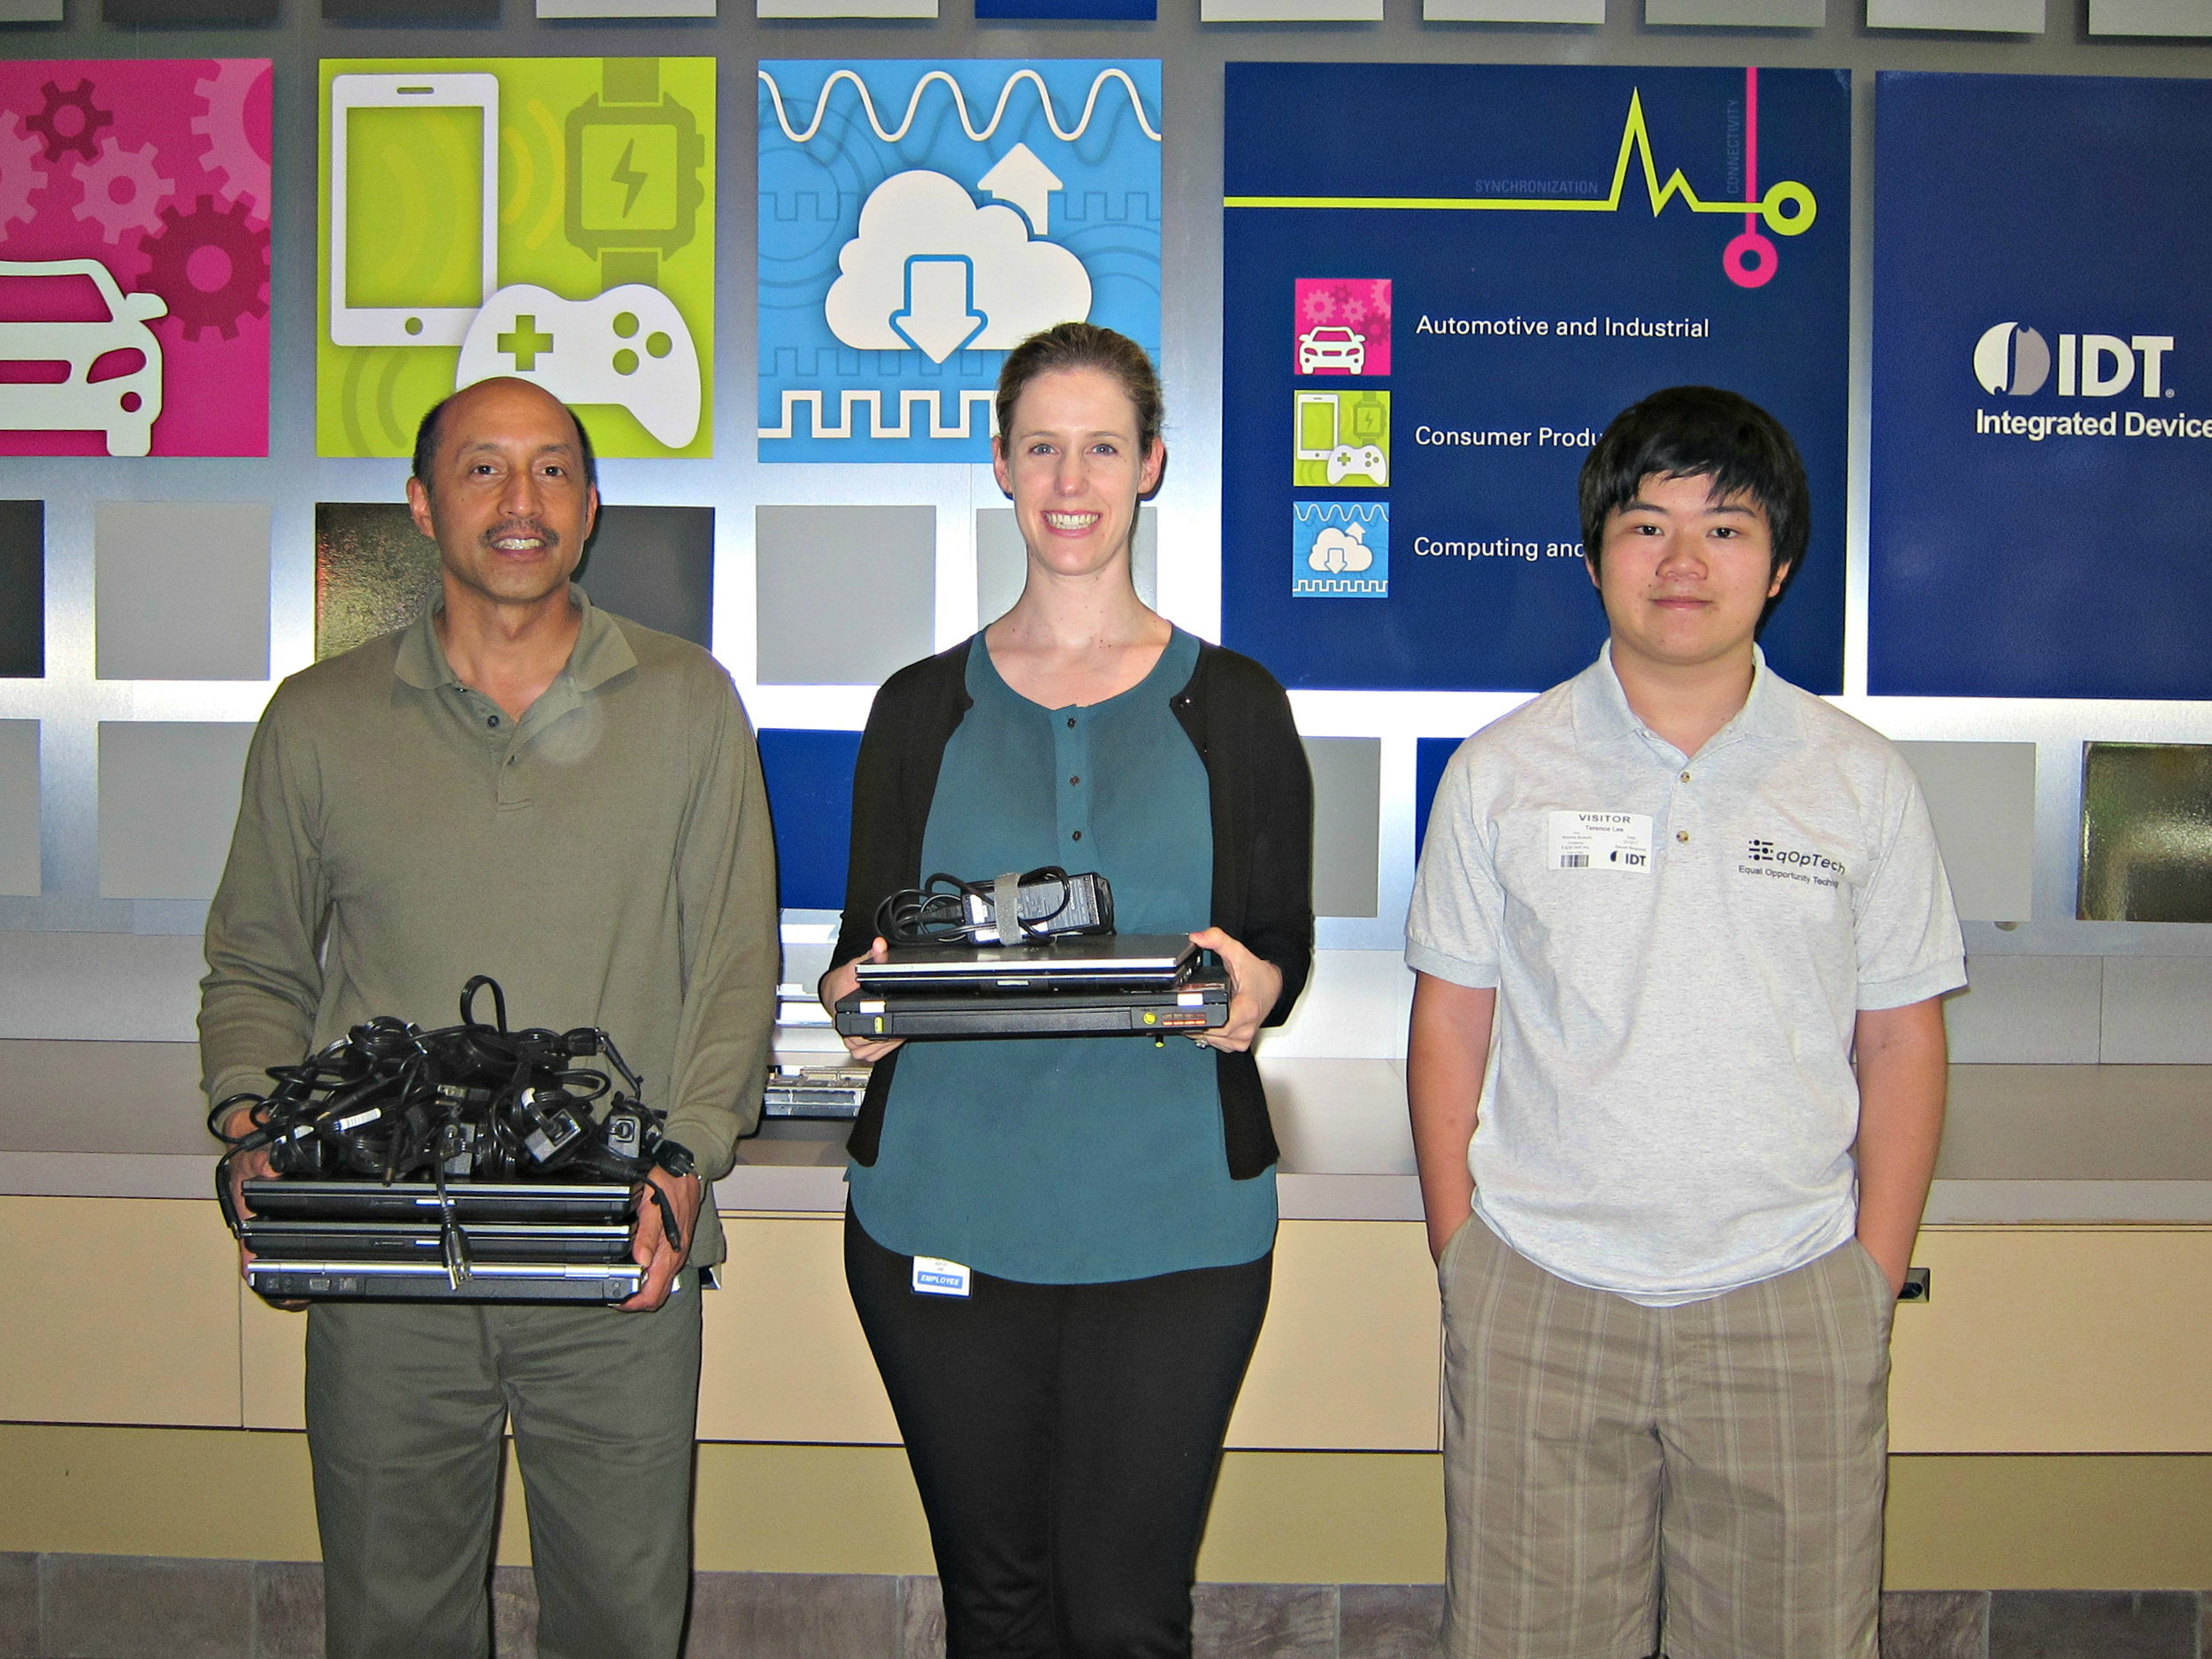 Robert Venenciano and Kristina Bullock from IDT presenting donated laptops to Terence Lee, EqOpTech (left to right)